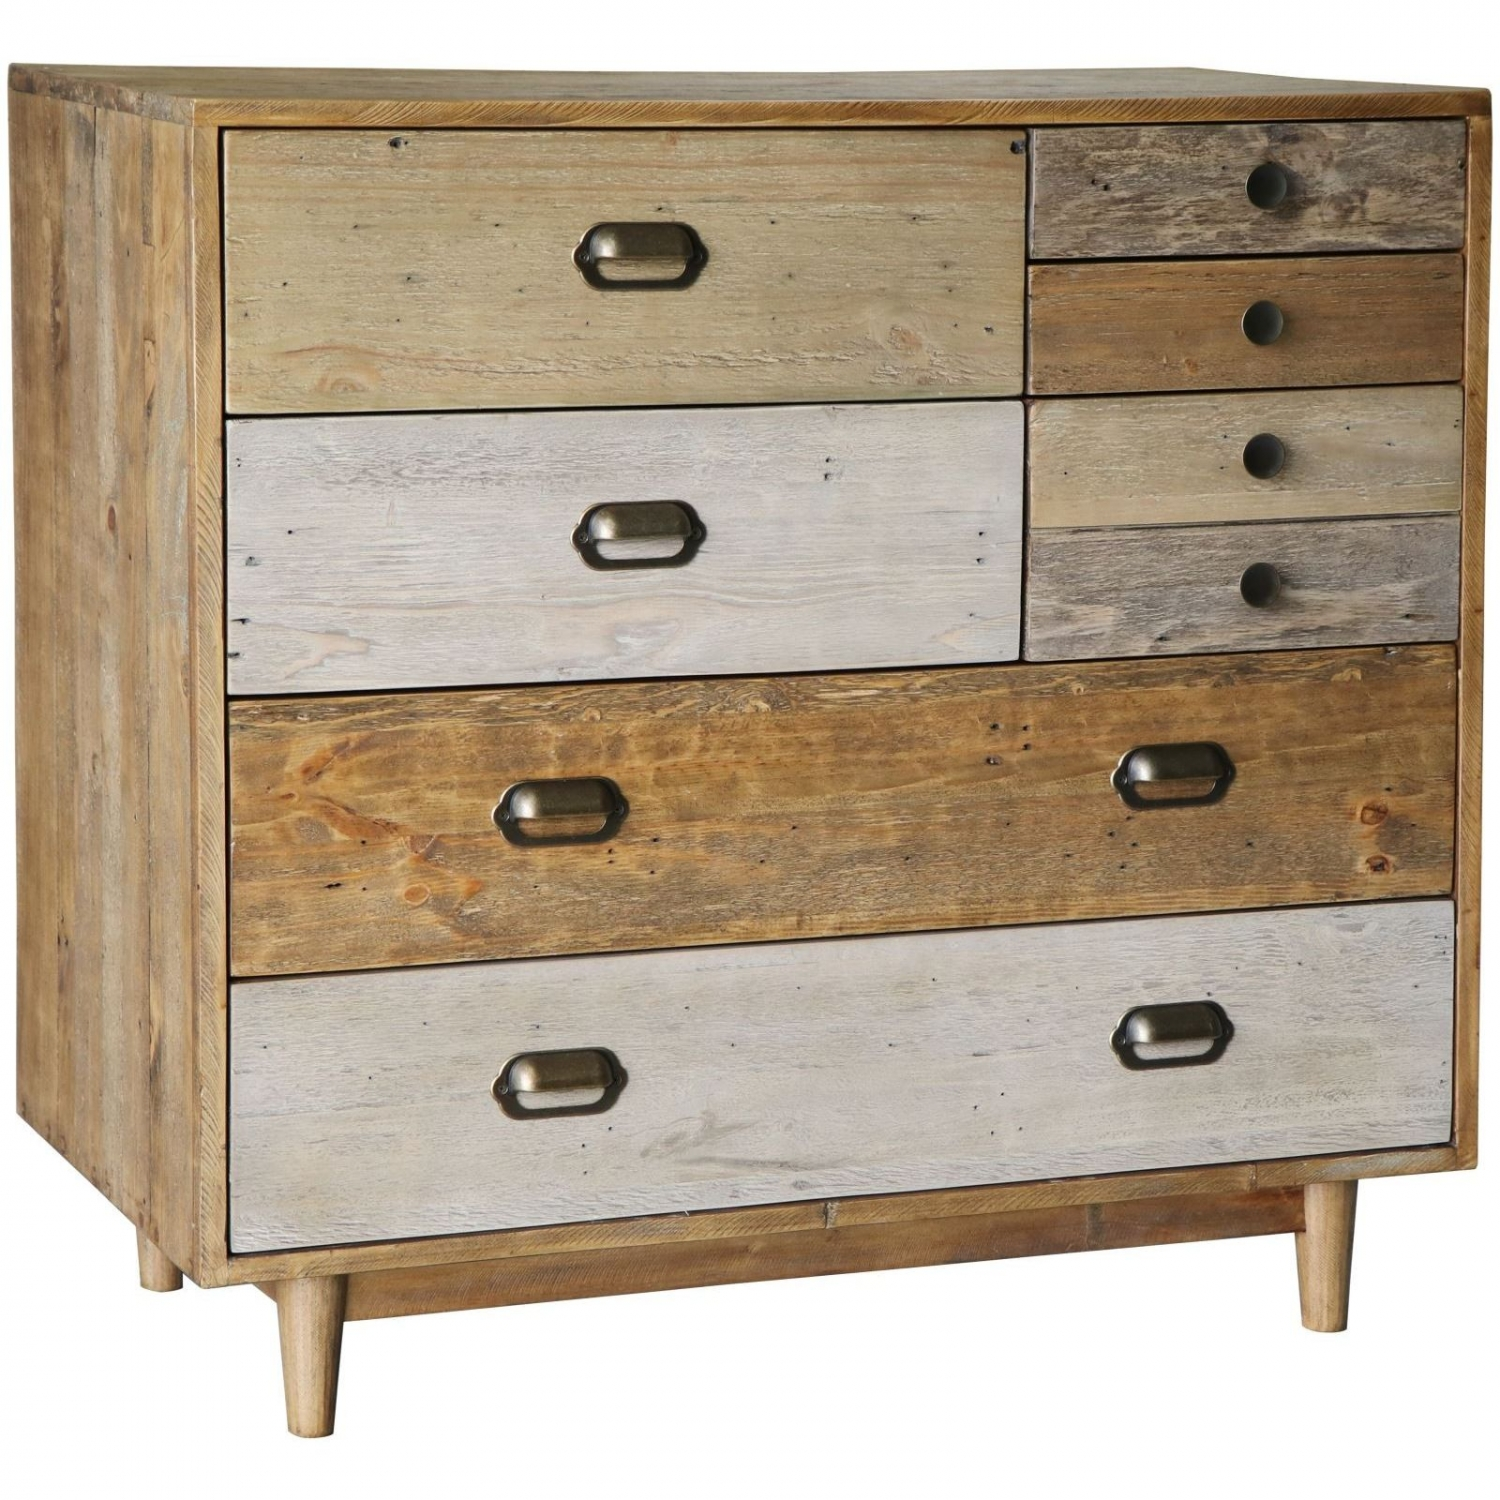 Details About Mordin Reclaimed Pine Bedroom Furniture 7 Drawer Chest Of Drawers With Legs